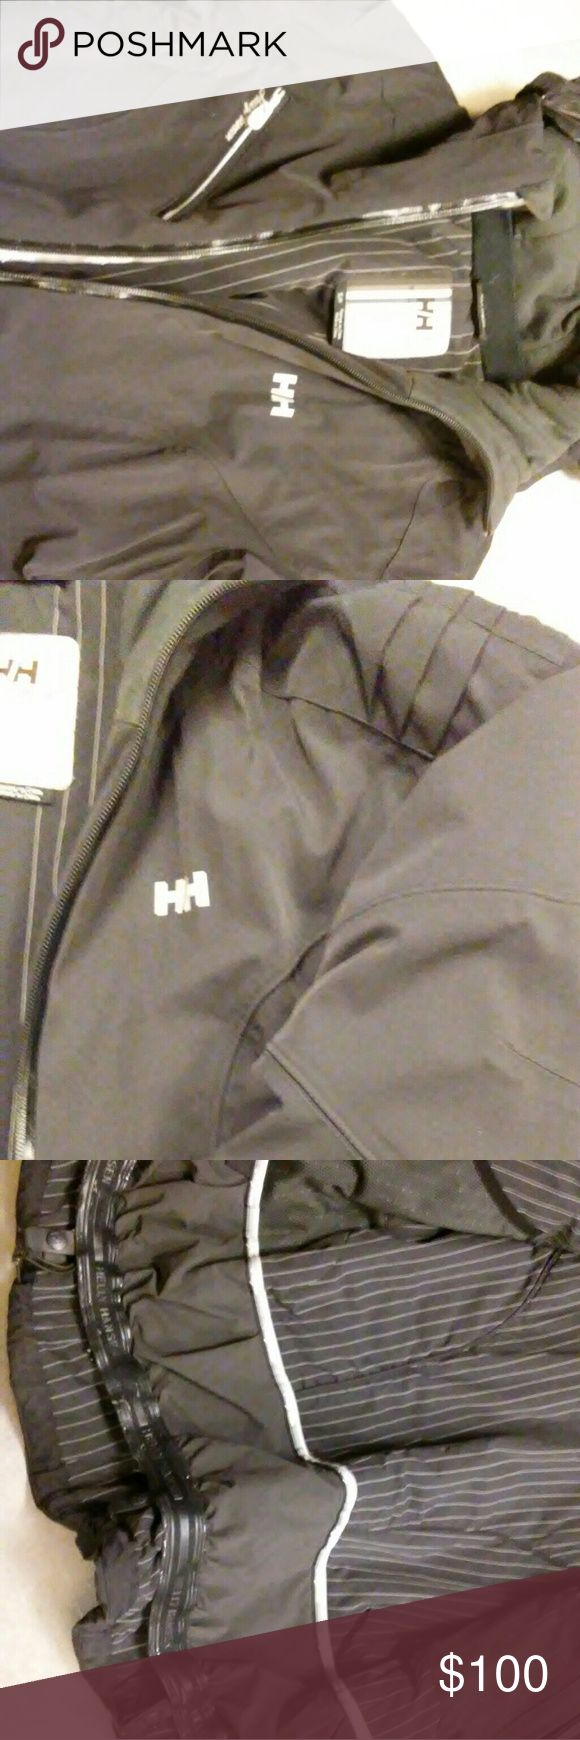 Helly Hansen Women's Ski Cost Size Small Black Helly Hansen Ski Coat. Inside snaps for ski pants. Vent zipping. Hood. Helly Hansen Jackets & Coats